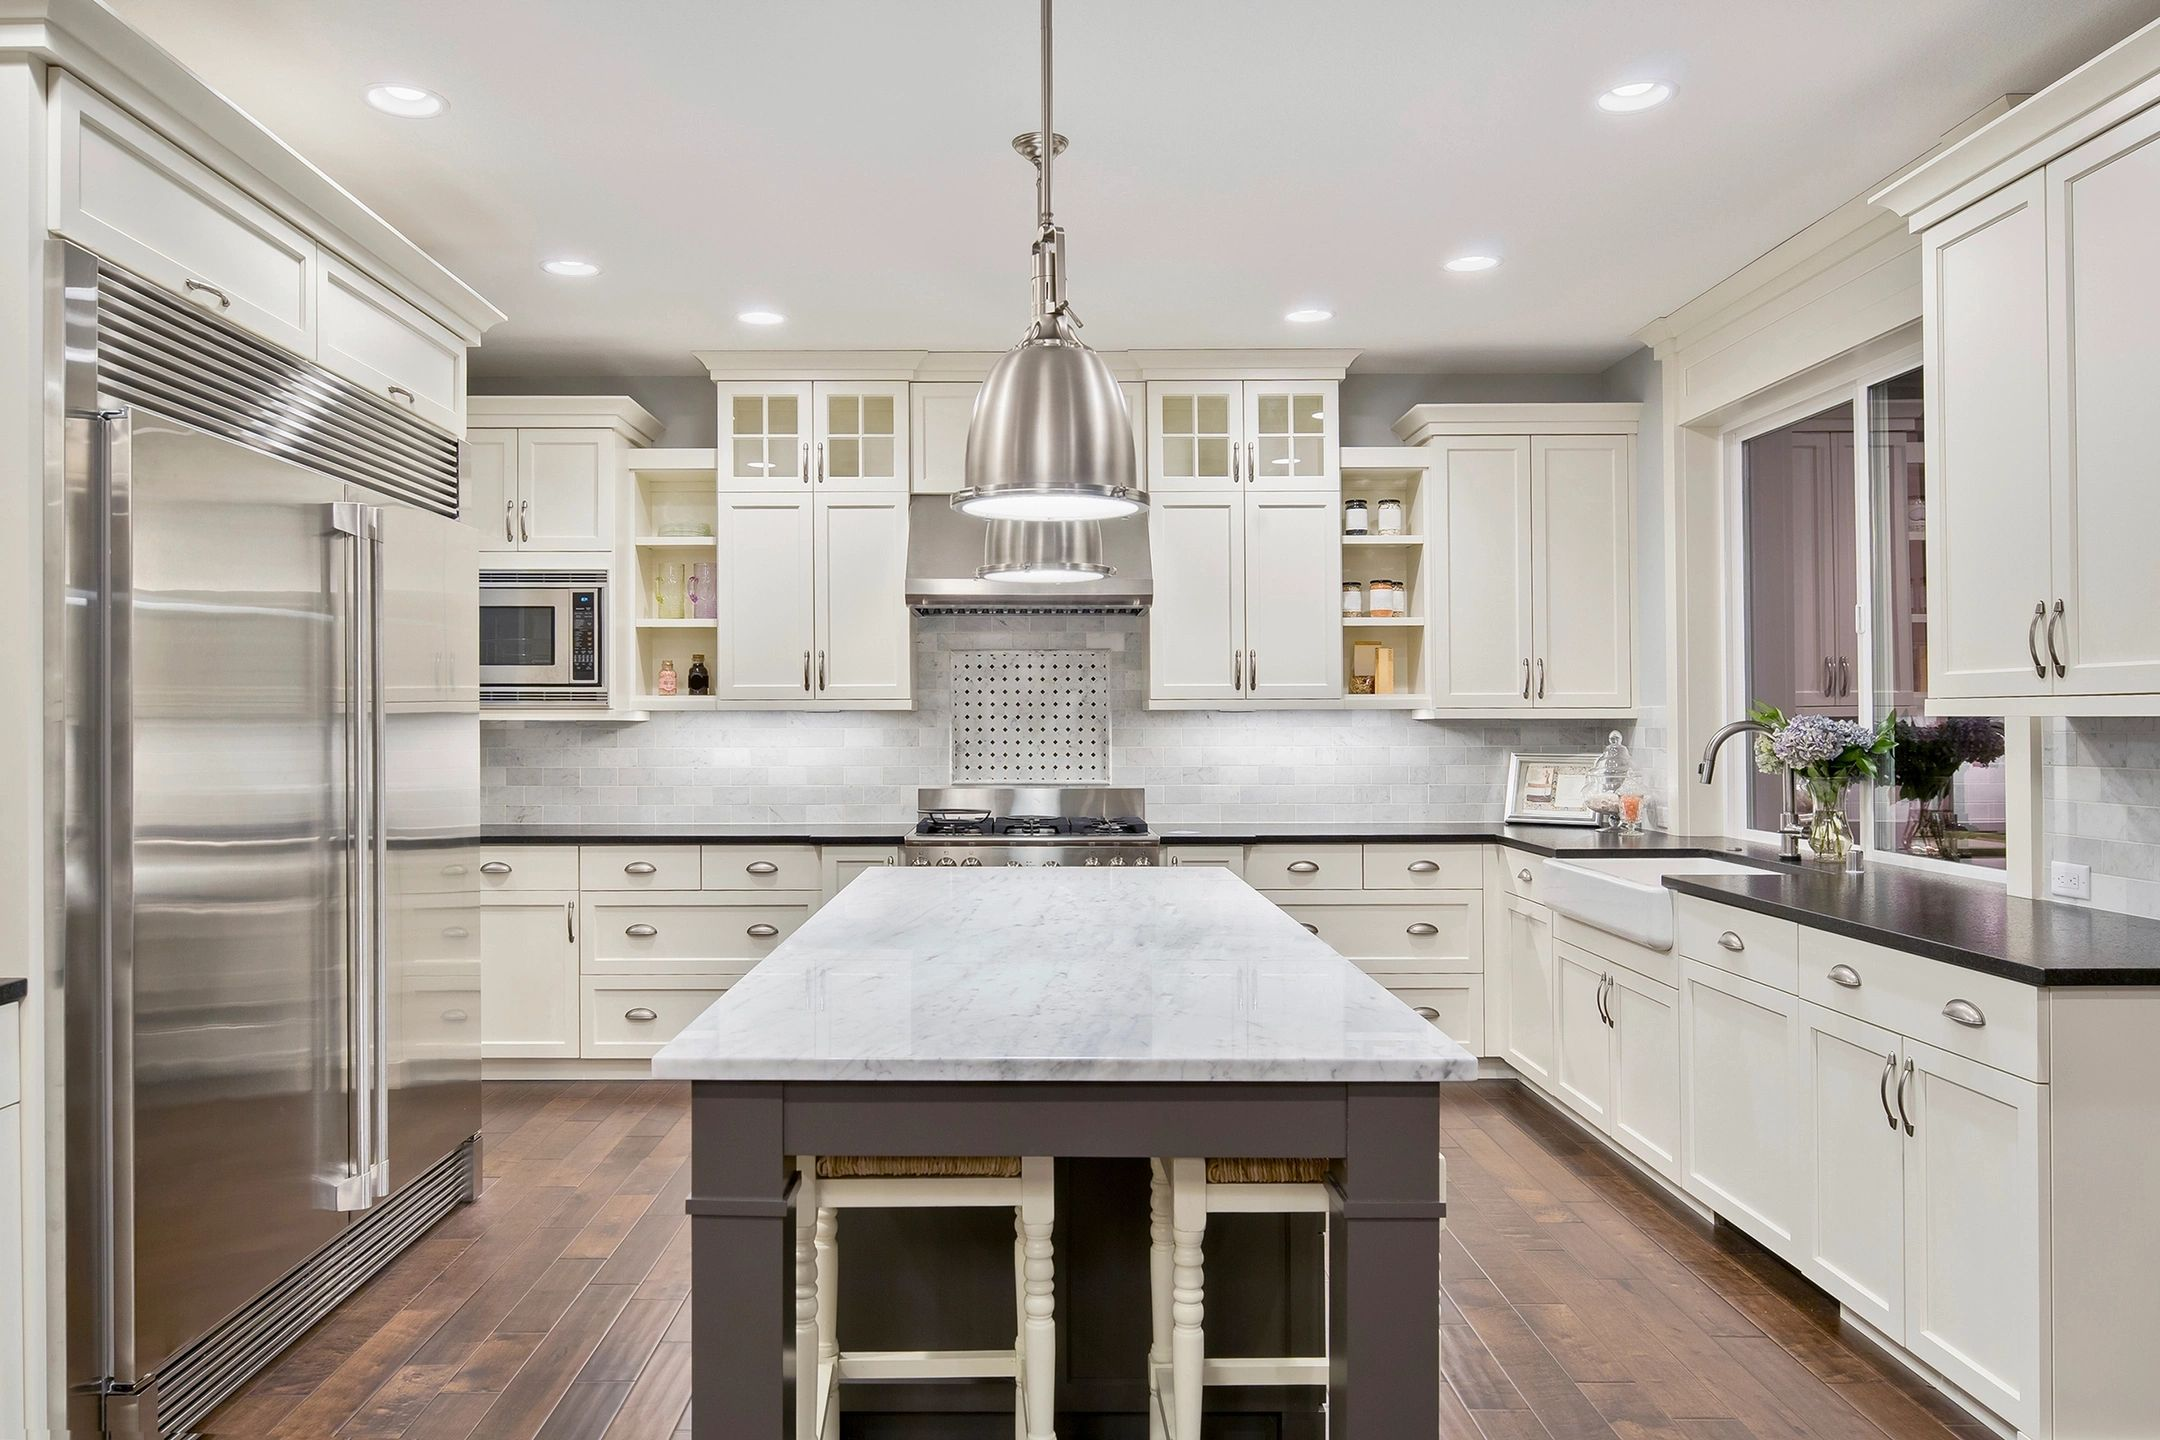 Blowing The Budget: What You Should Be Spending Your Money On When It Comes To Renovations